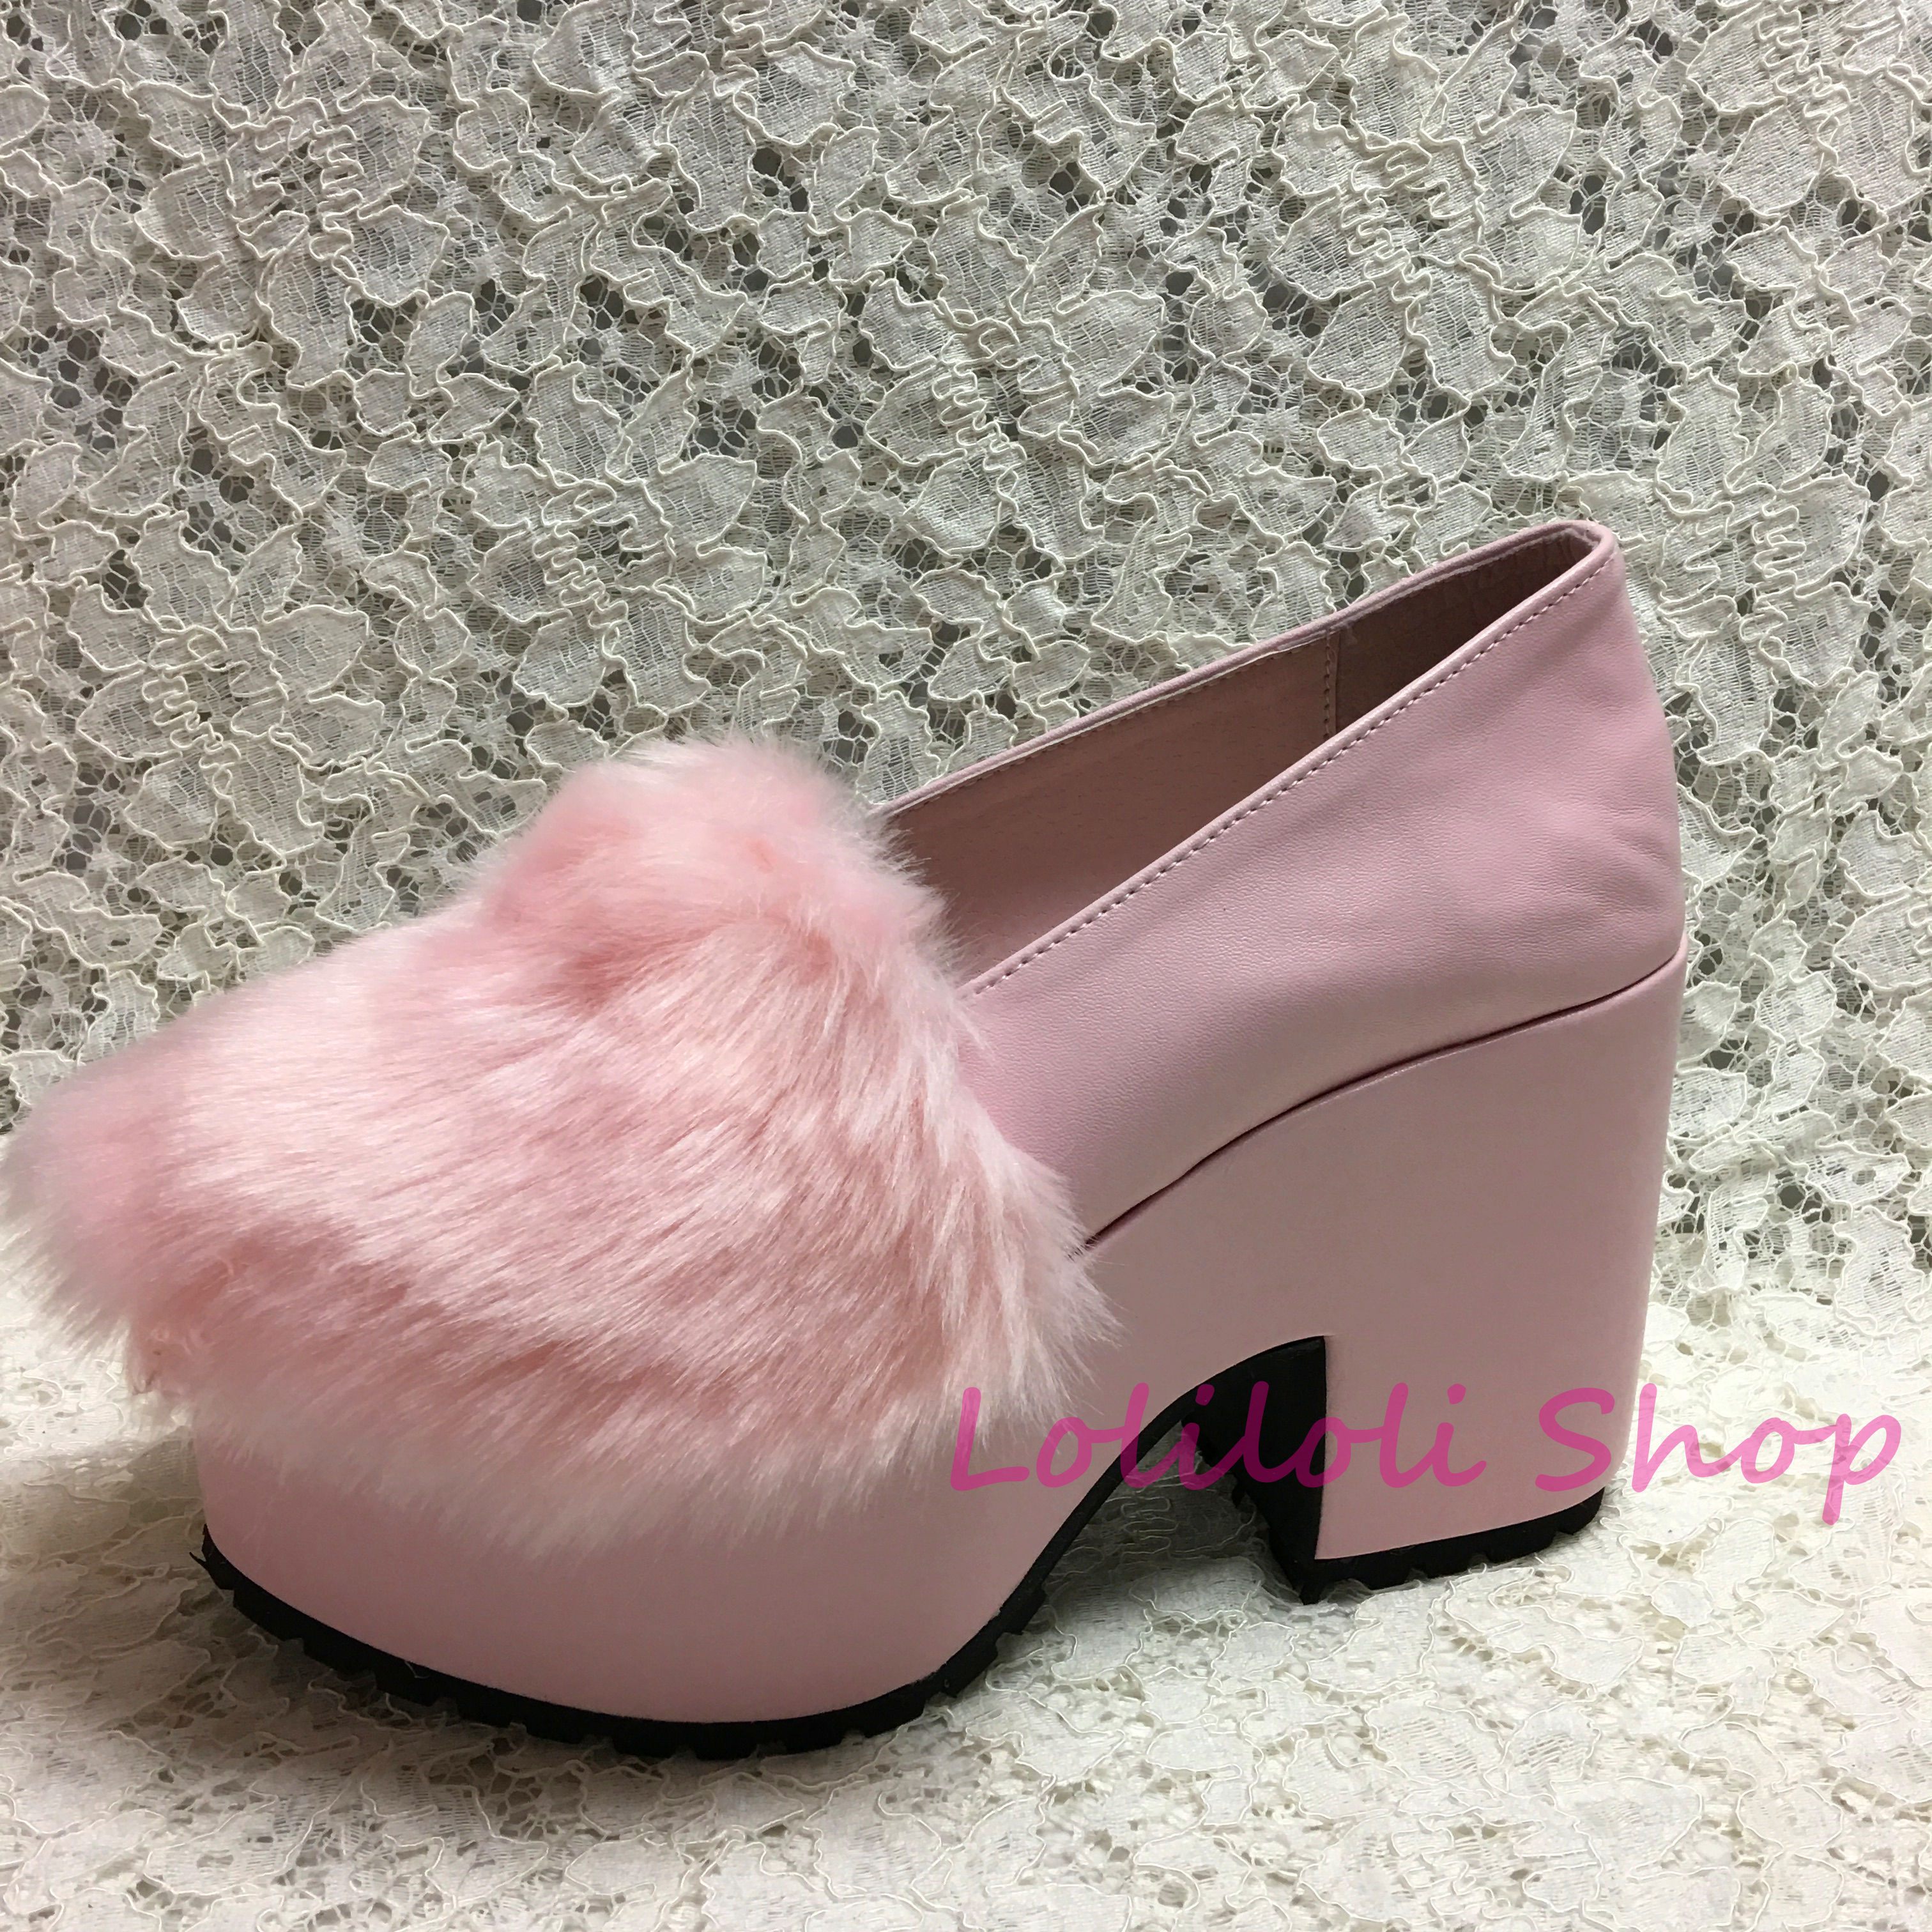 Princess sweet lolita shoes Loliloliyoyo antaina Japanese design cos shoe custom pink slip-on thick heel shoes with fluff  5002n